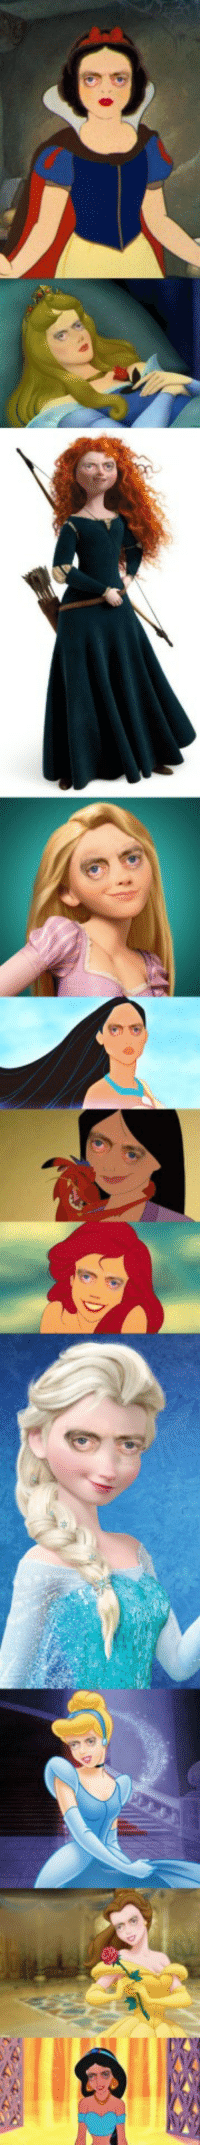 Disney, Steve Buscemi, and Disney Princesses: Disney Princesses but with Steve Buscemis eyes